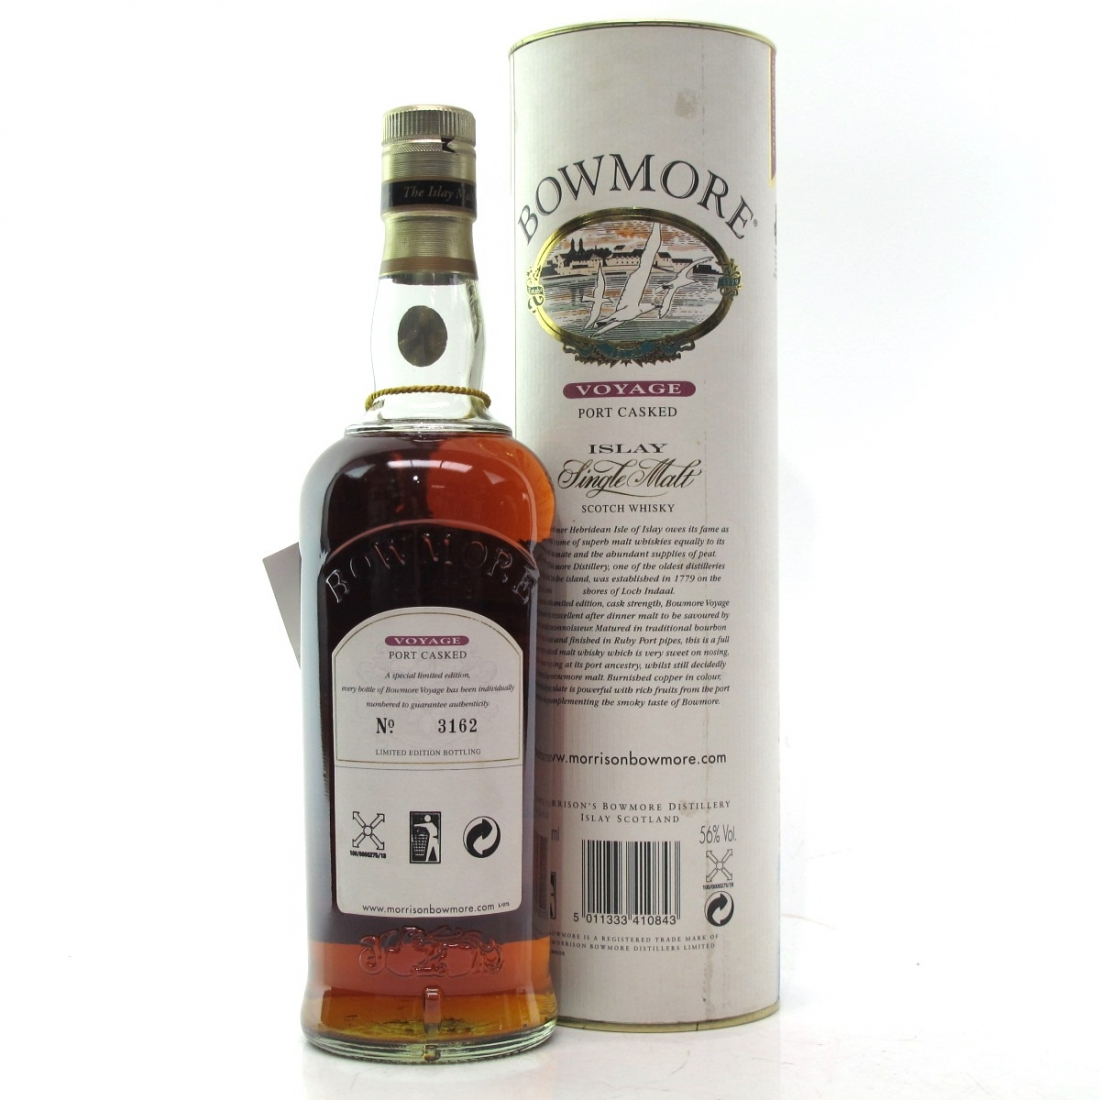 Bowmore Voyage Port Cask Limited Edition